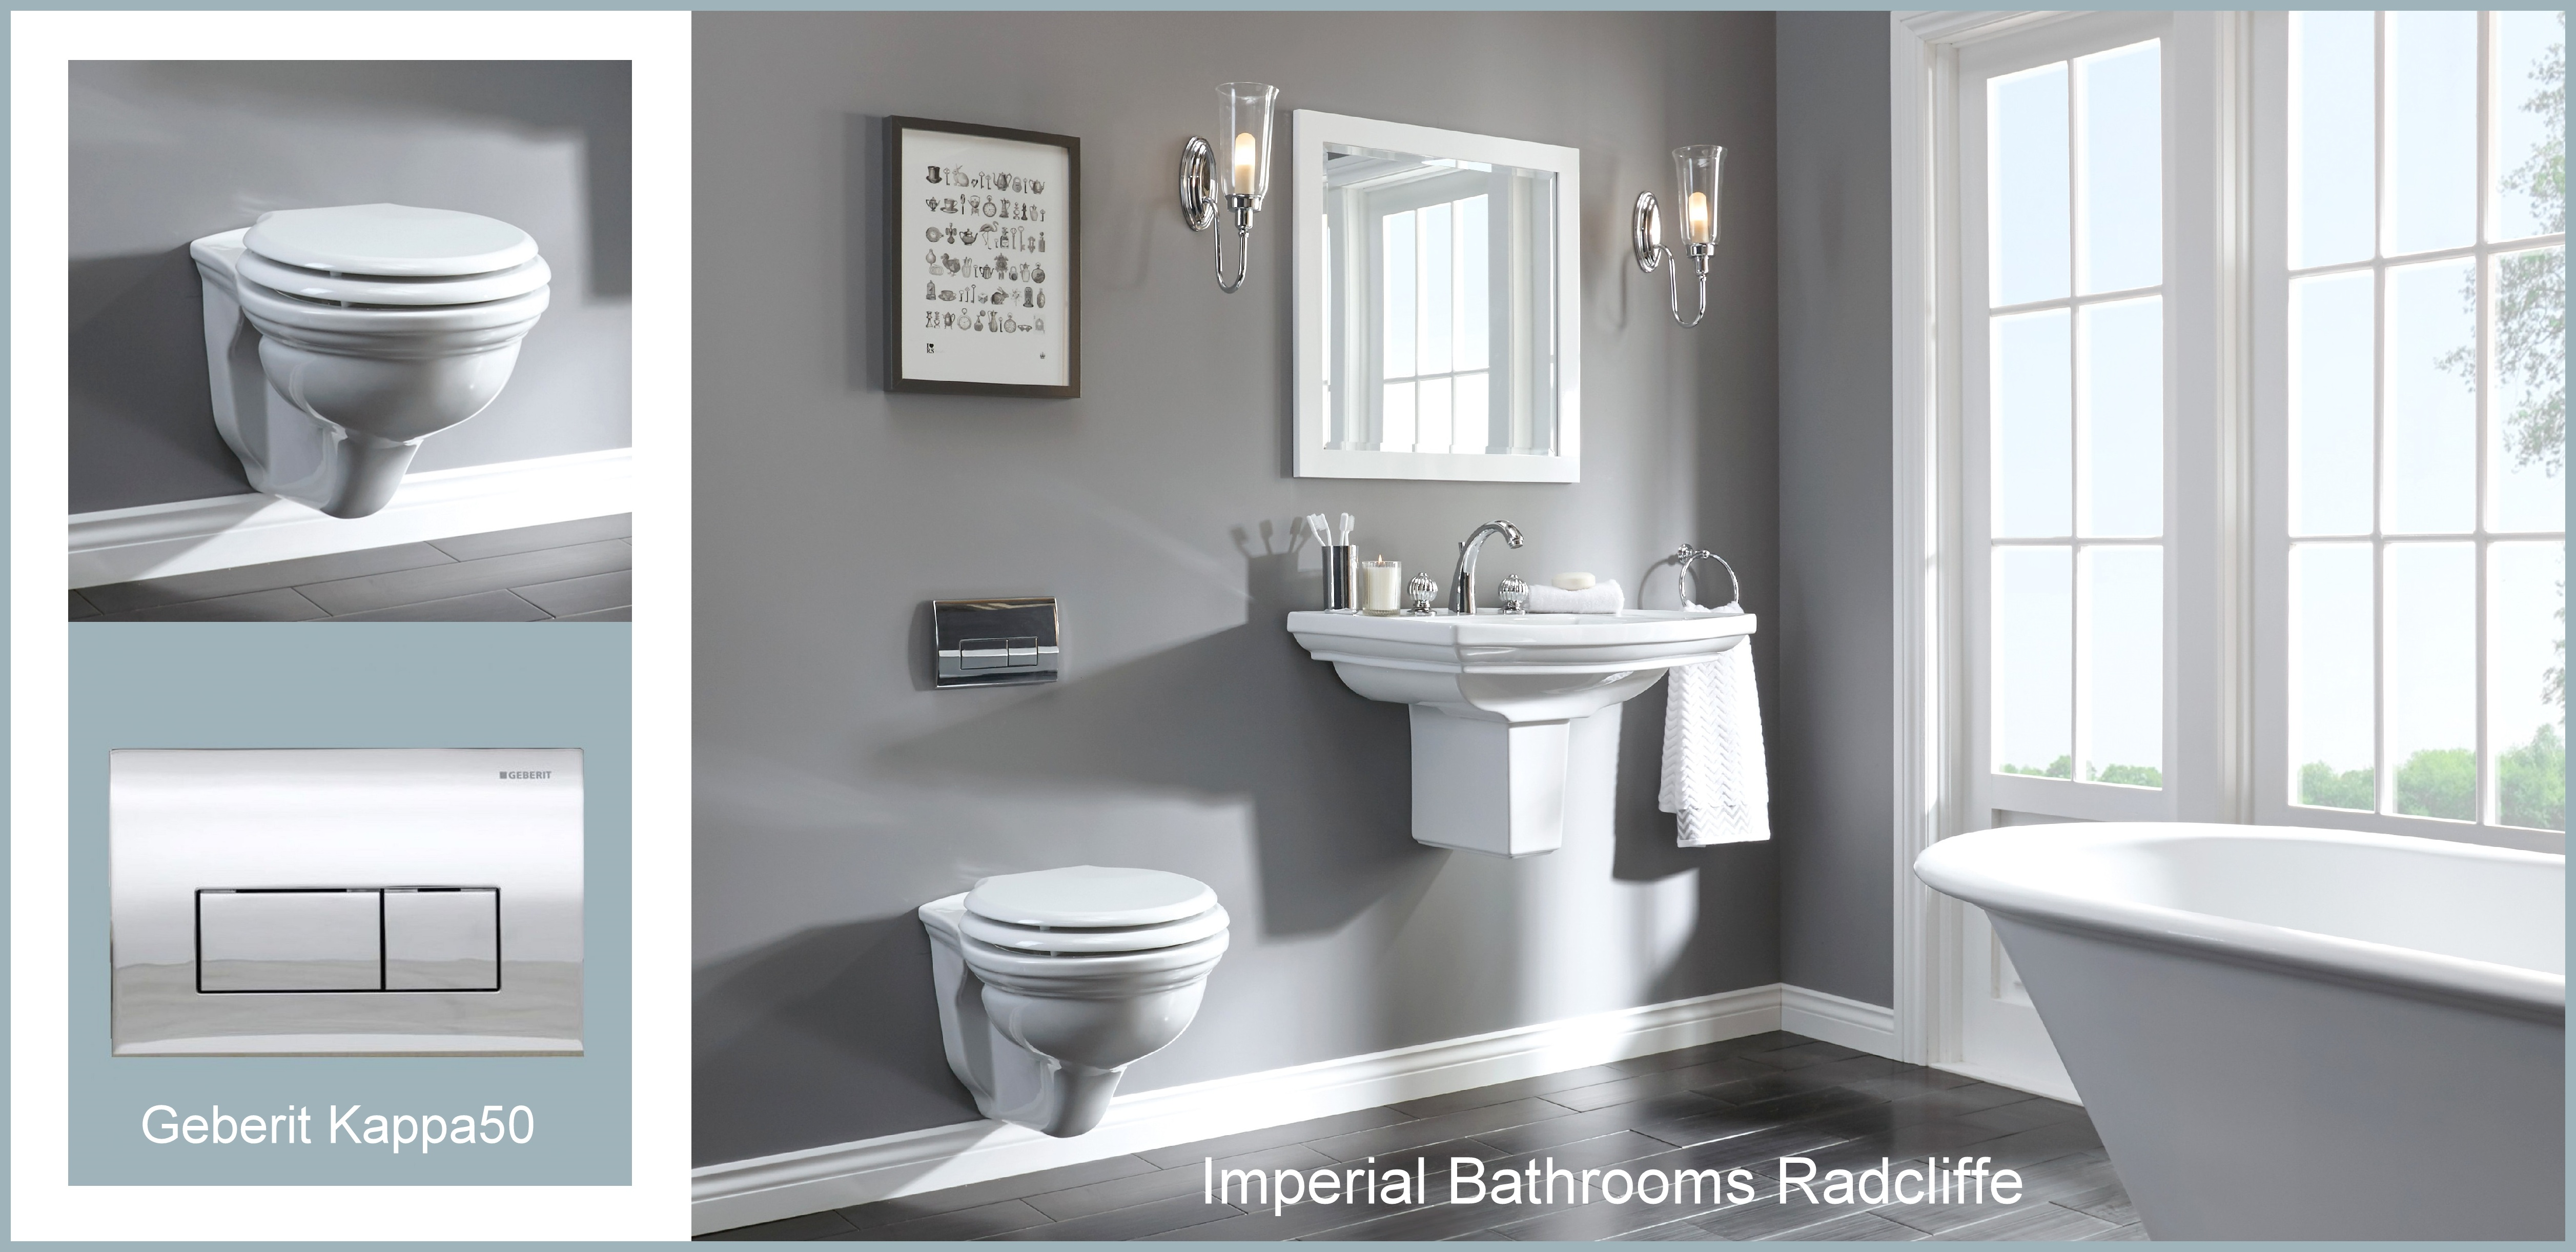 Imperial Bathrooms Radcliffe Wall Hung Toilet